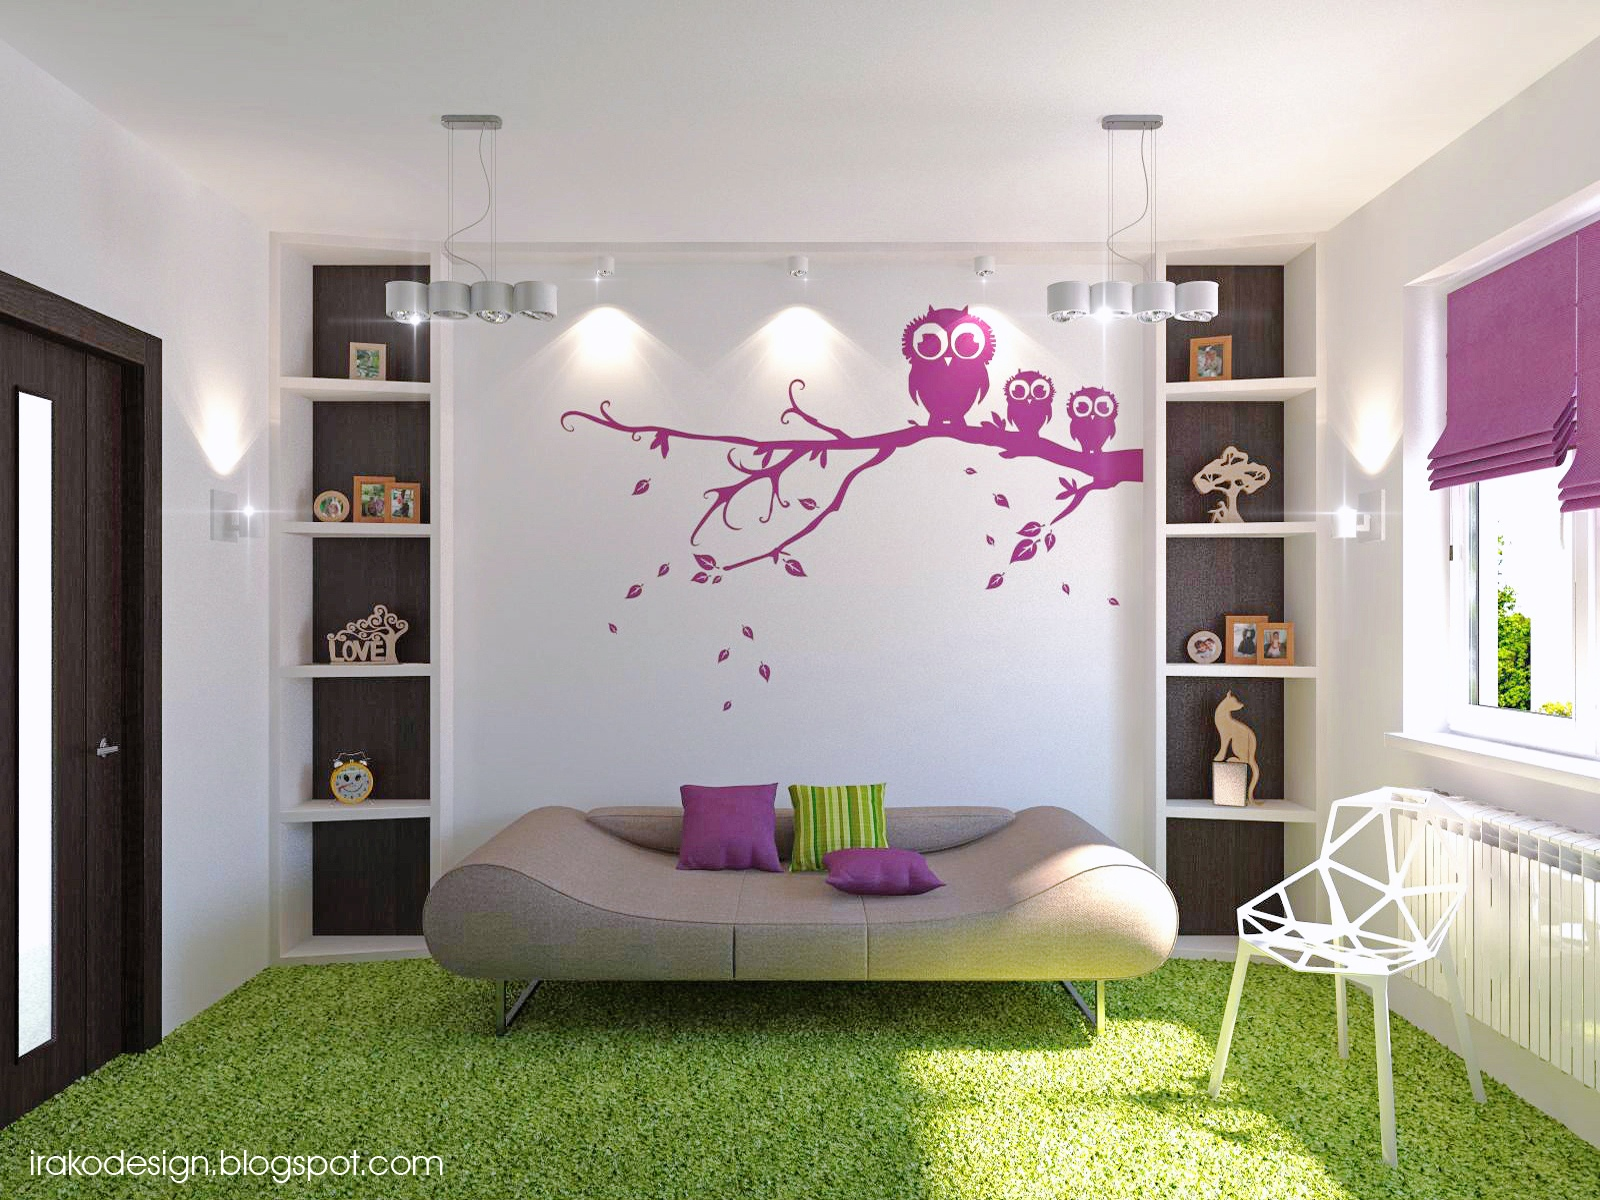 Bedrooms for girls green - Bedrooms For Girls Green 16